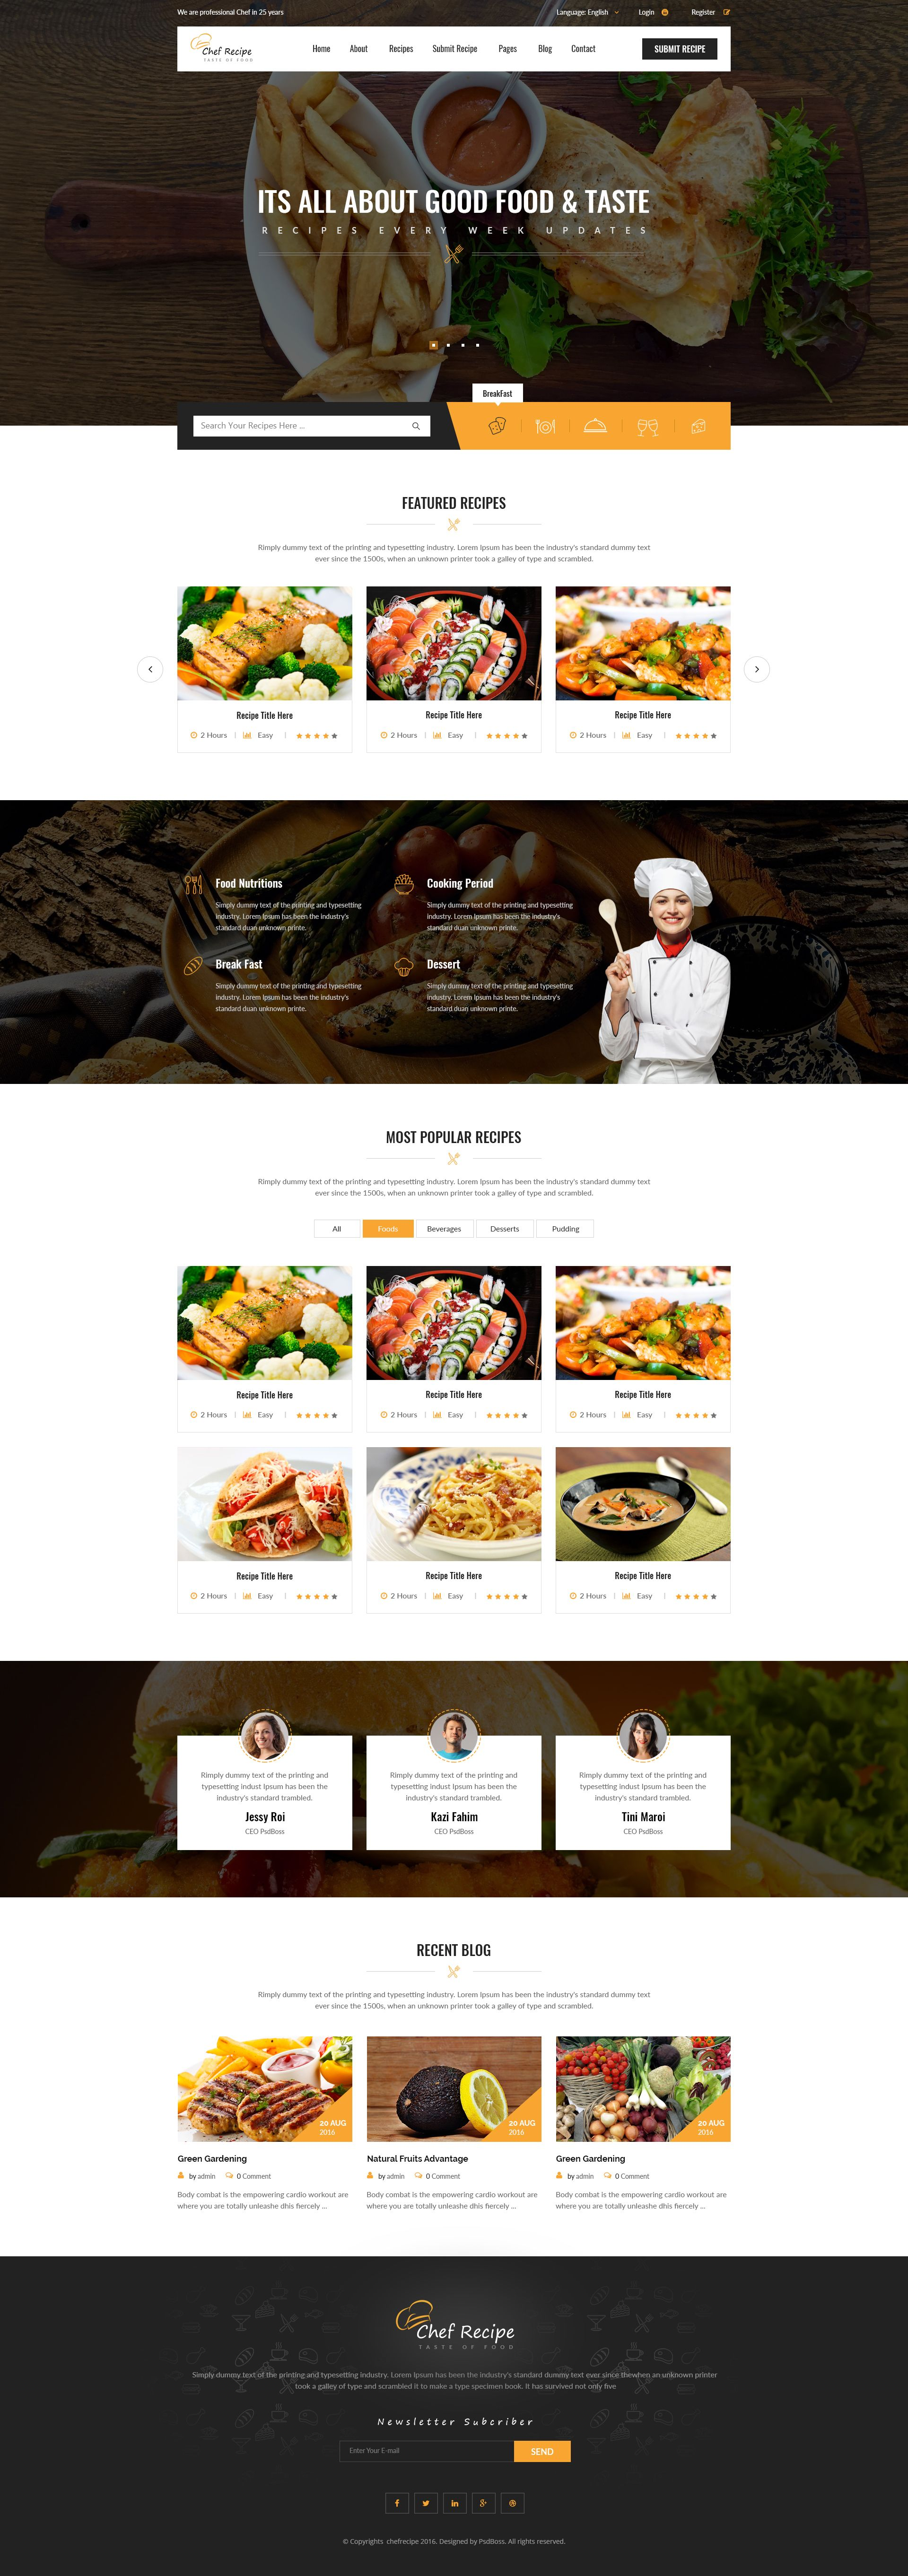 Chef recipe food and recipe psd template pinterest chef chef recipe food and recipe psd template chefs cooking cuisine download forumfinder Choice Image